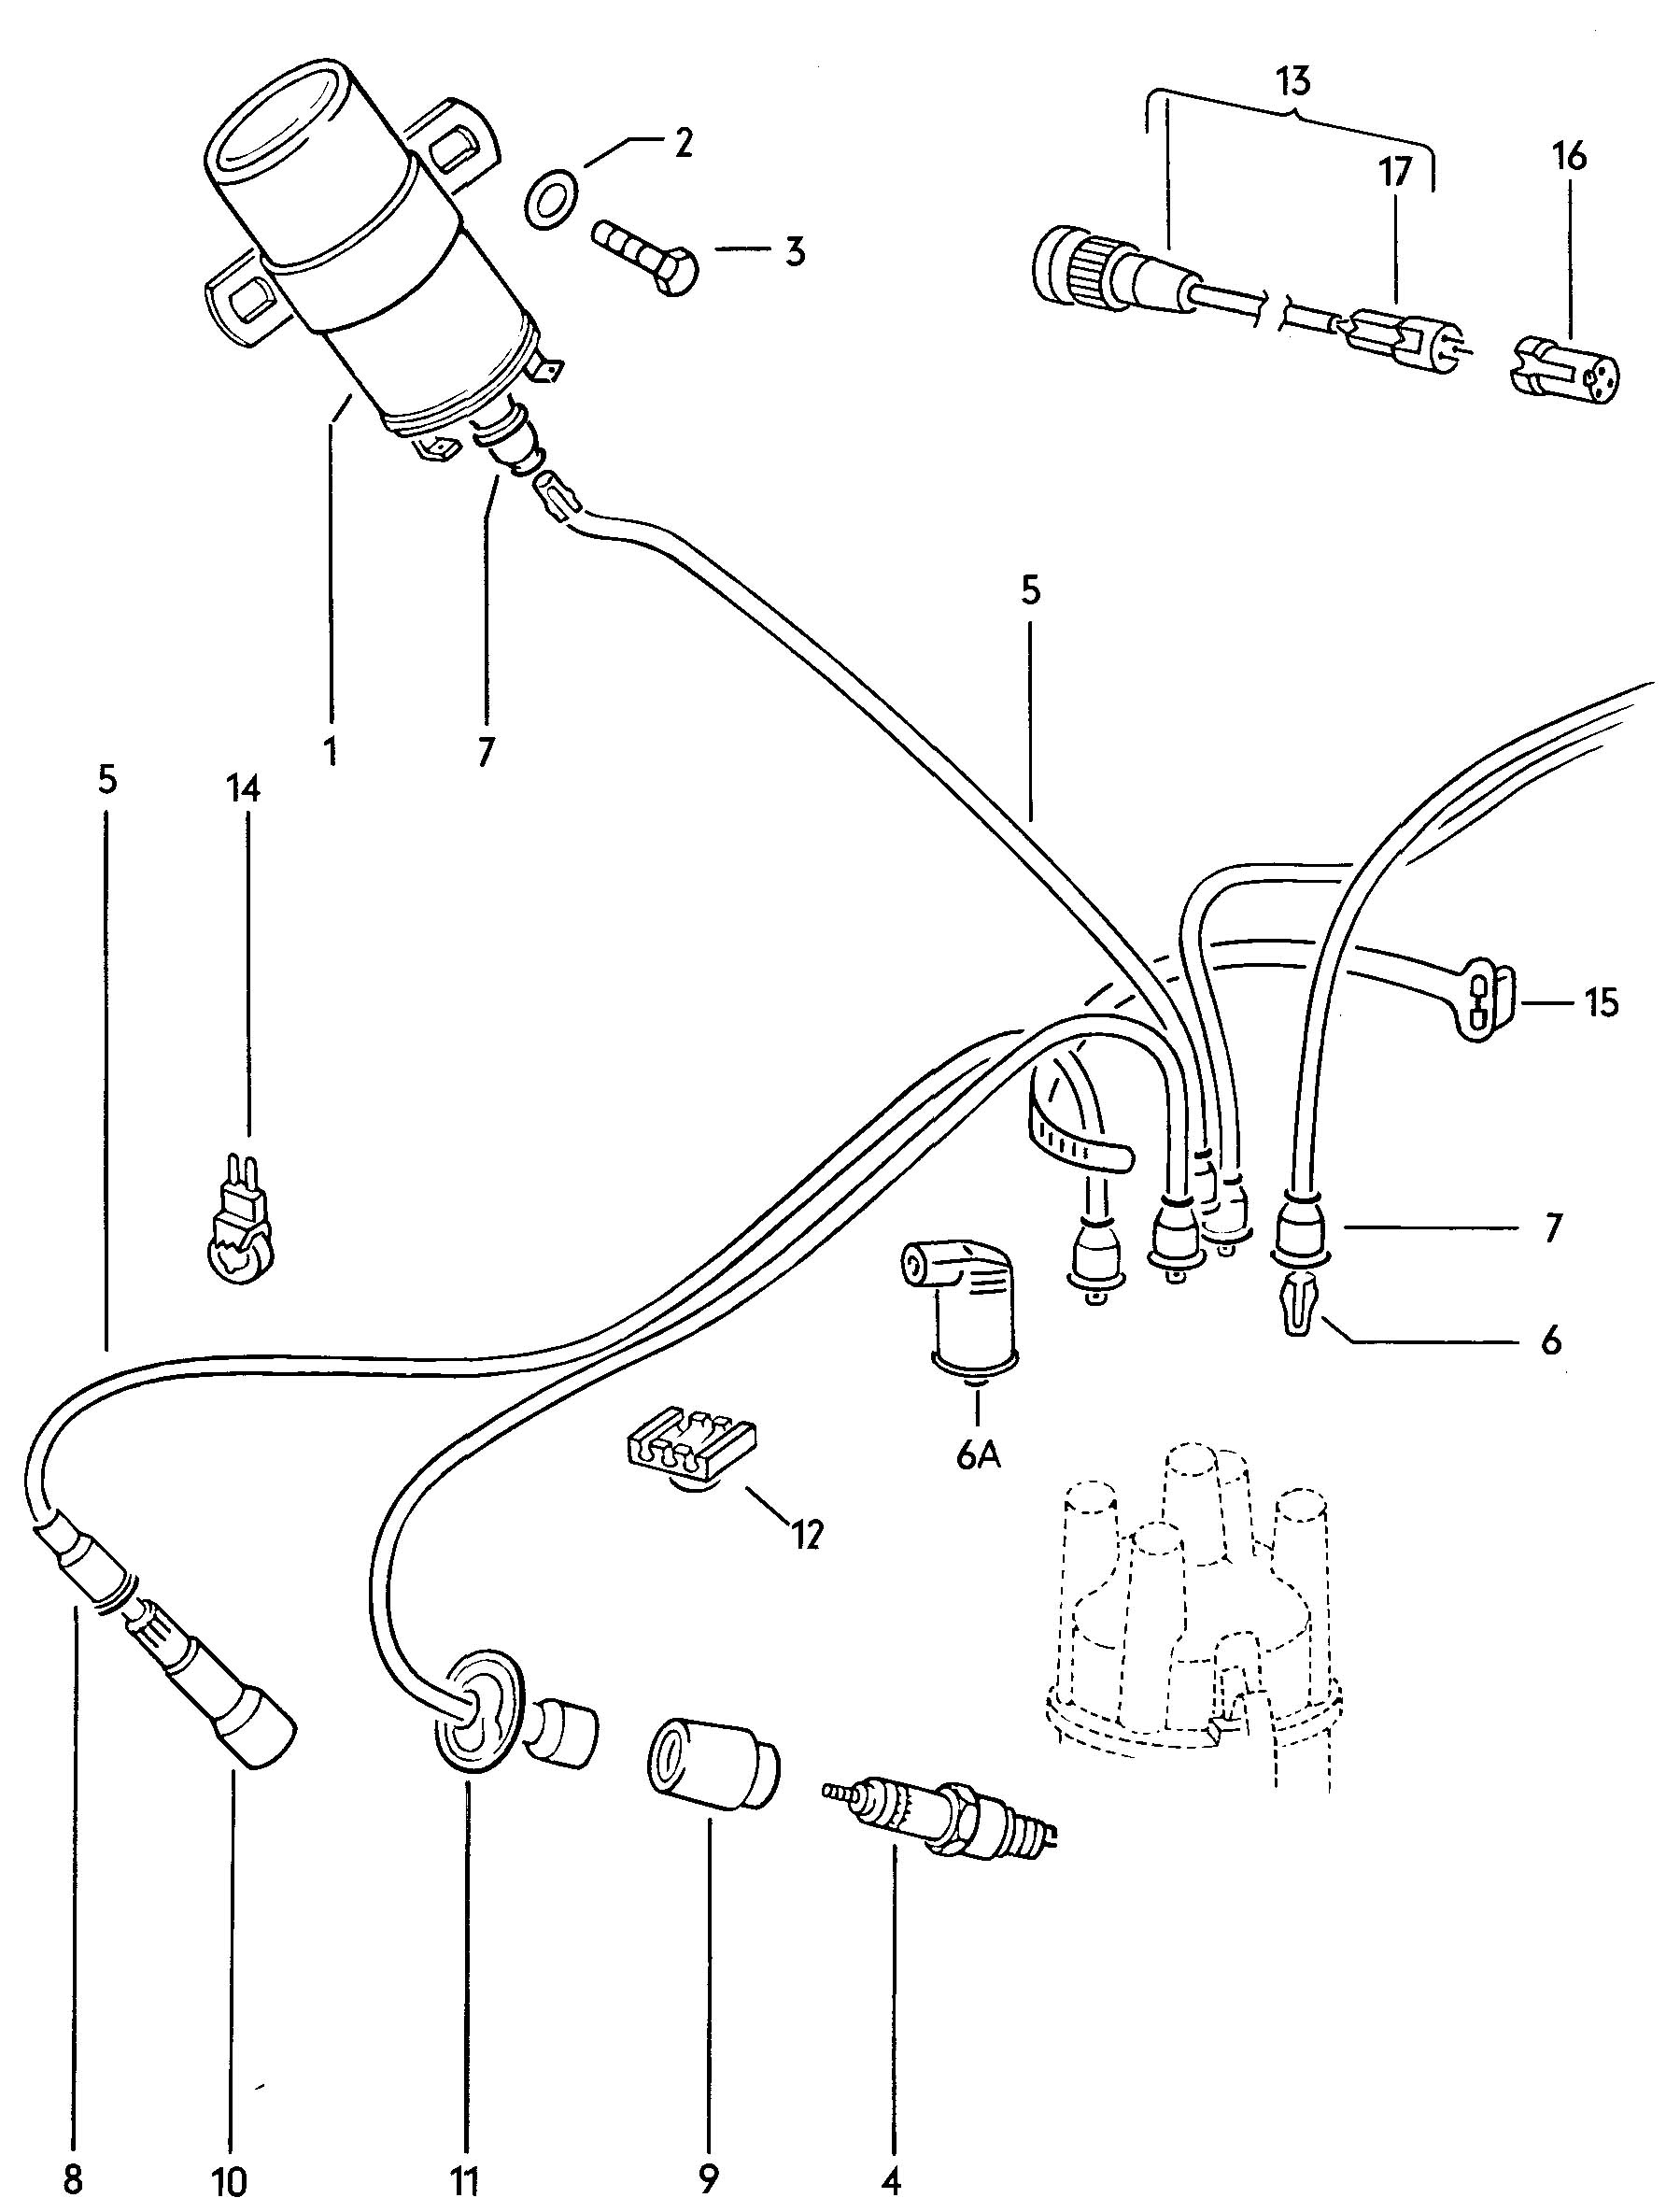 vw coil wiring diagram toyota cruise control volkswagen beetle ignition wire spark plug